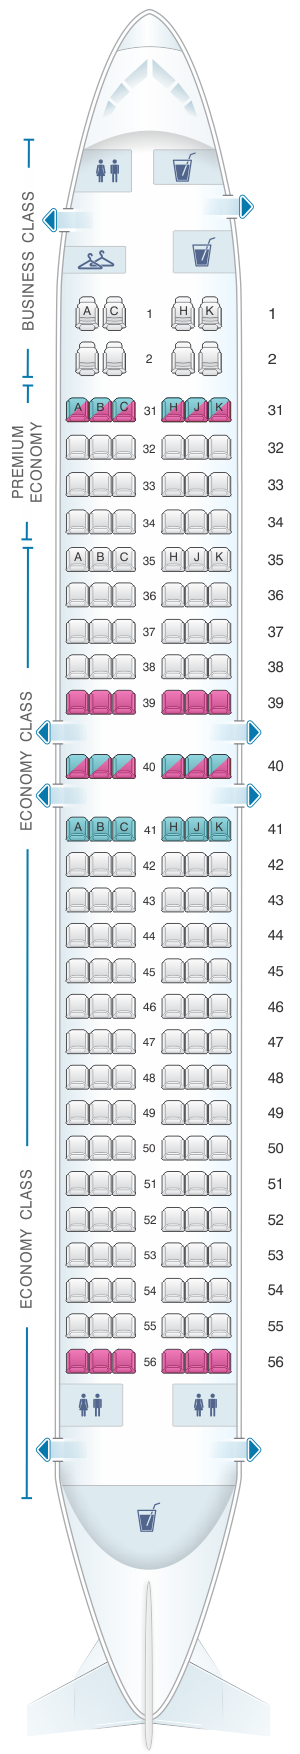 Seat map for China Southern Airlines Boeing B737 800 Layout A